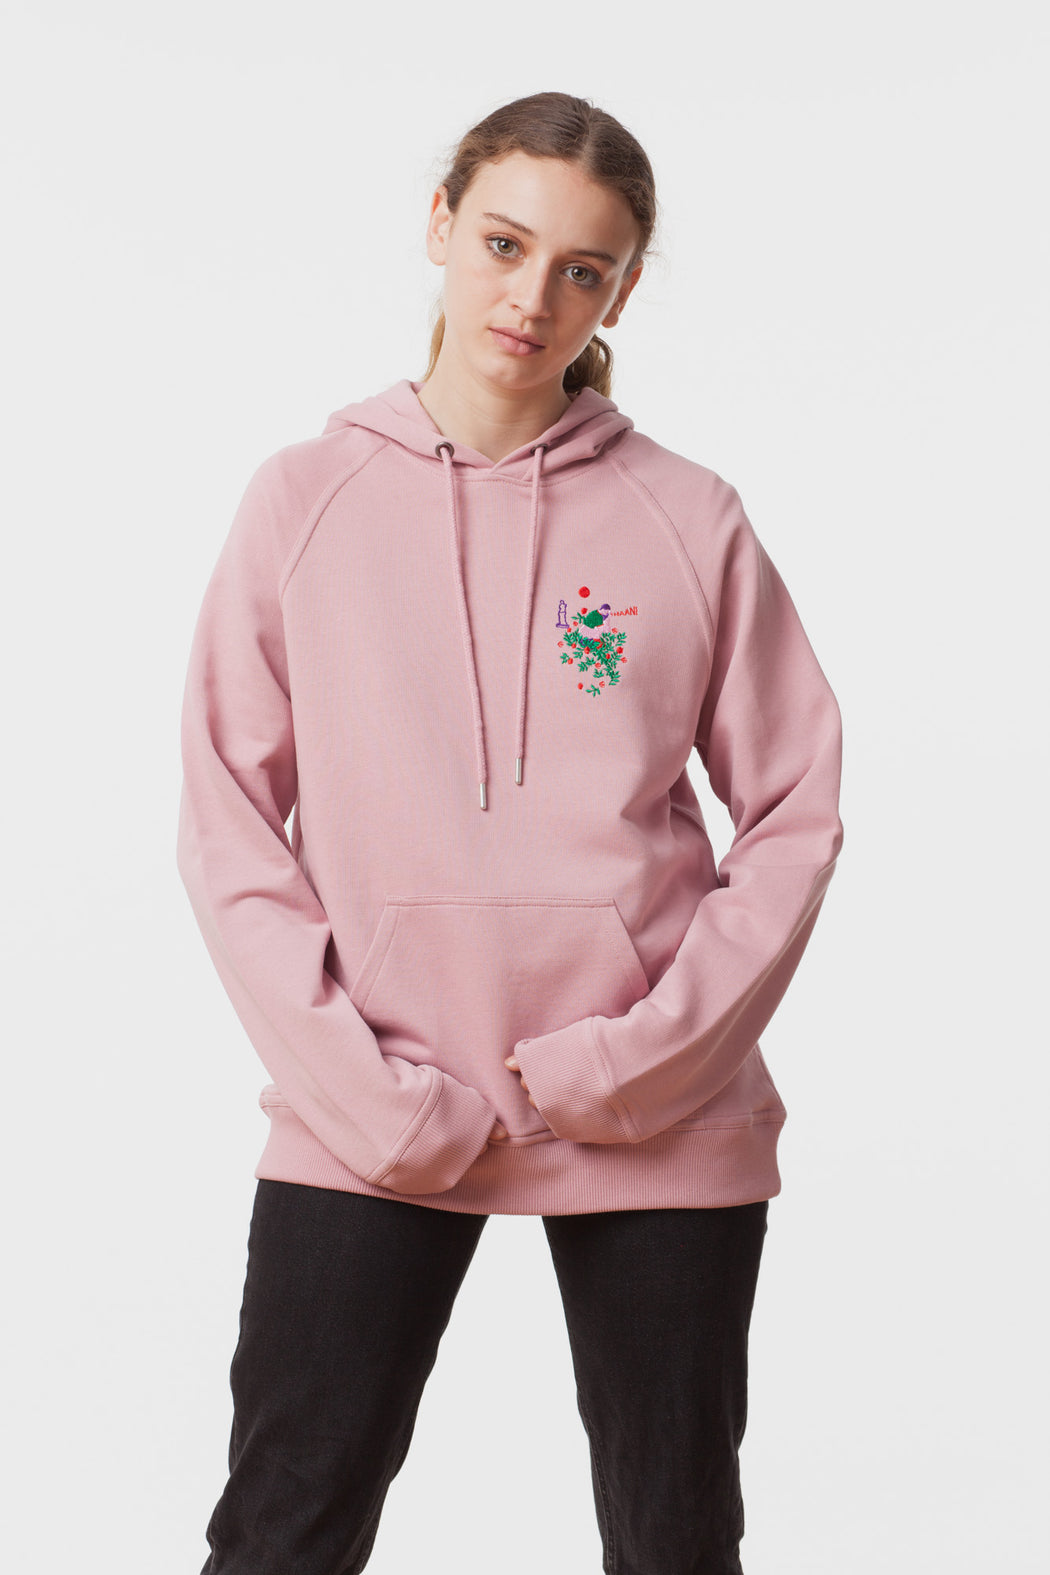 Carne Bollente:Meet Me in the Garden – Embroidered Hoodie Sweatshirt,ANOMIE